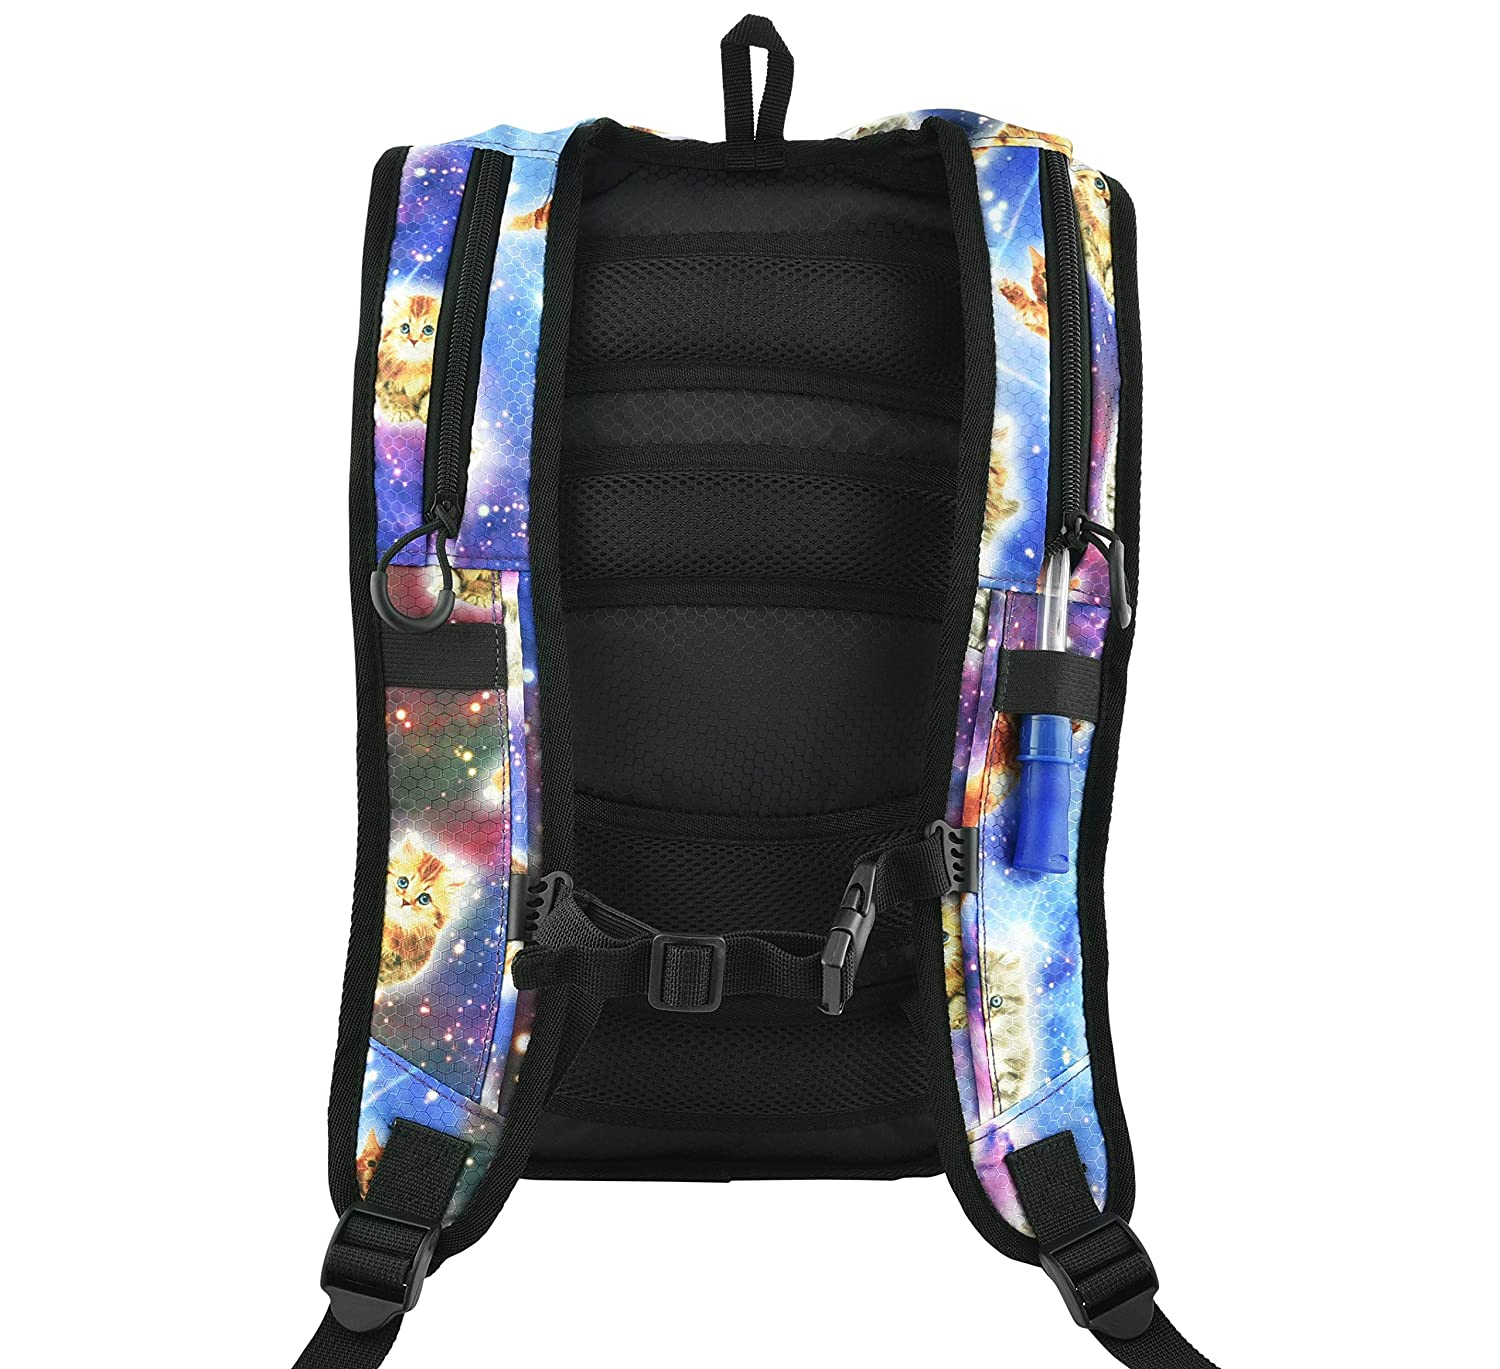 Amazon.com: KANDYPACK Rave Hydration Pack Backpack with Water Bladder (Pink Holographic): Kandy Pack